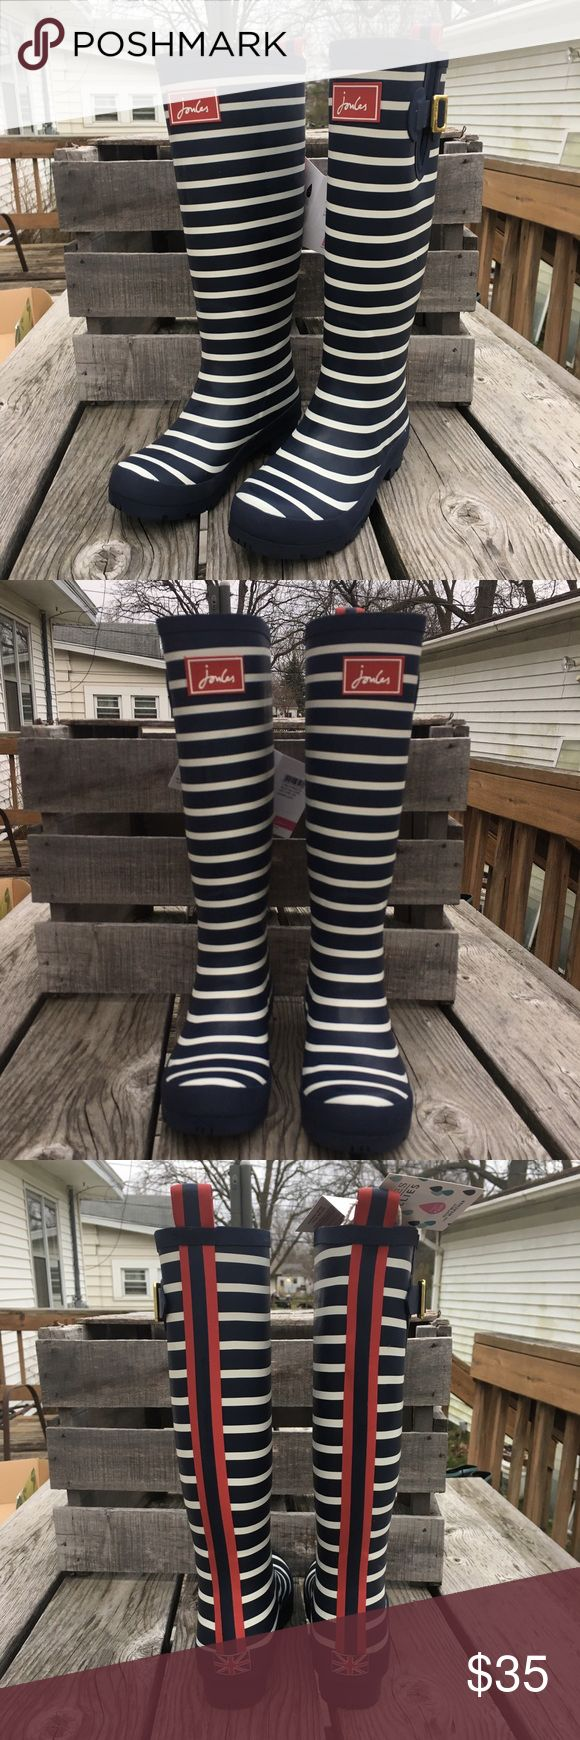 🆕List! Joules French Navy Stripe Rainboots! NEW! Adorable Wellies! Size 5. New in box! Shaft height 13.5 inches. Shaft width 14.5 inches. Heel height 1 inch. Platform height 0.5 inch. Material is rubber. Pull on styling. Joules Shoes Winter & Rain Boots